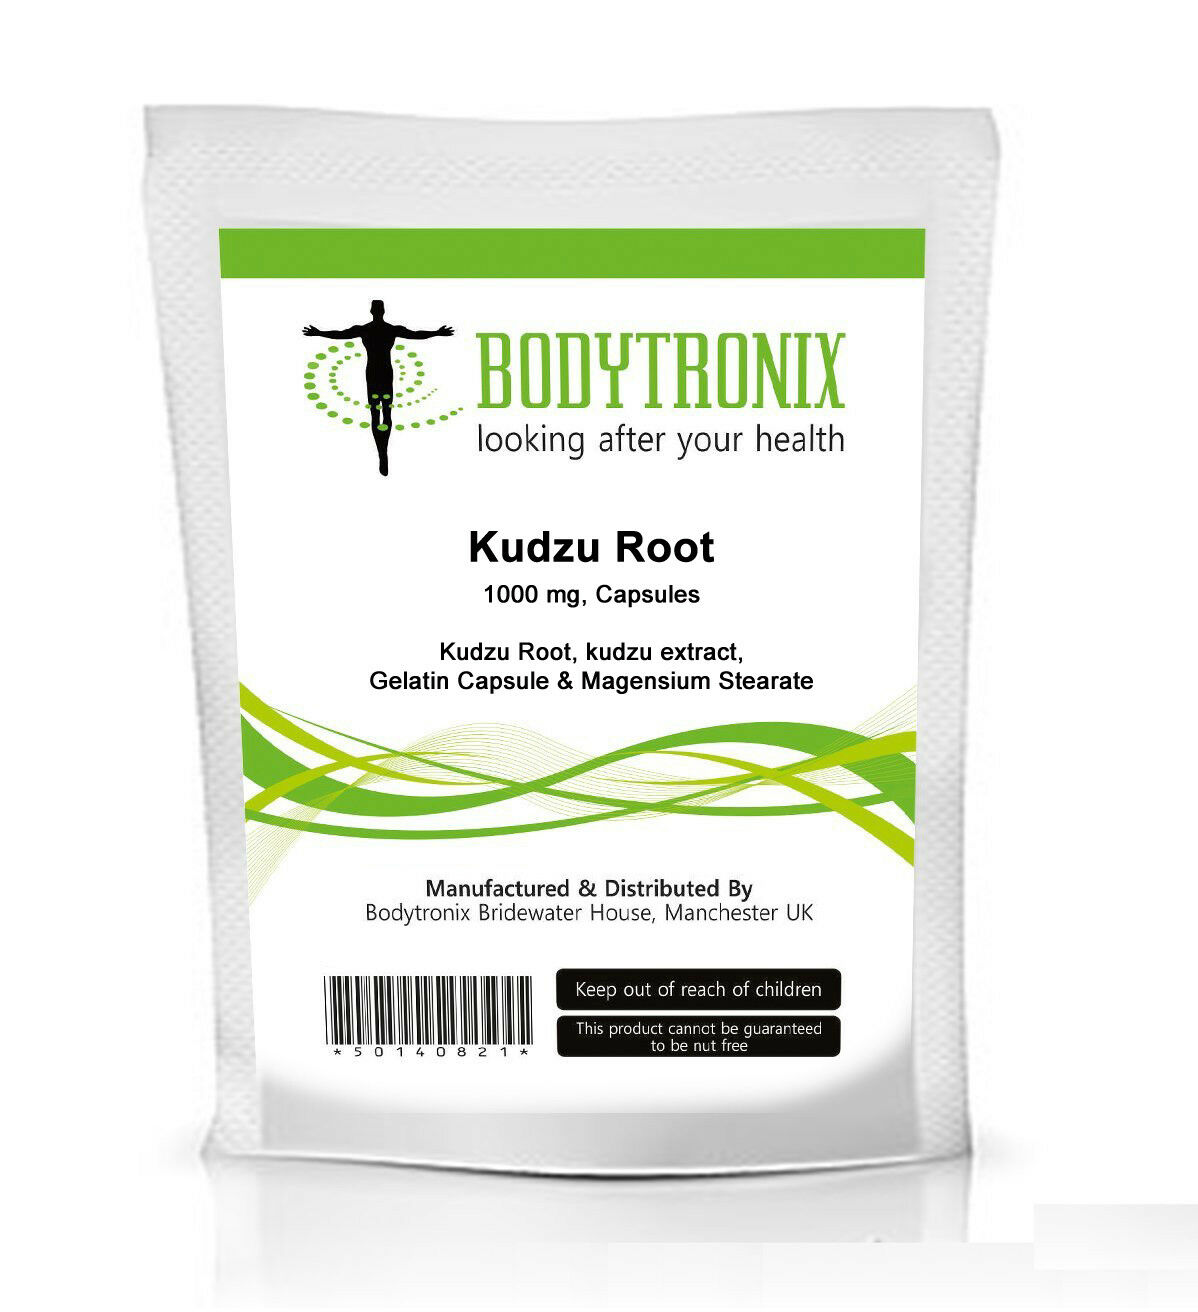 KUDZU ROOT 1000mg Capsules Bodytronix Natural Supplement for Hangover, Menopause